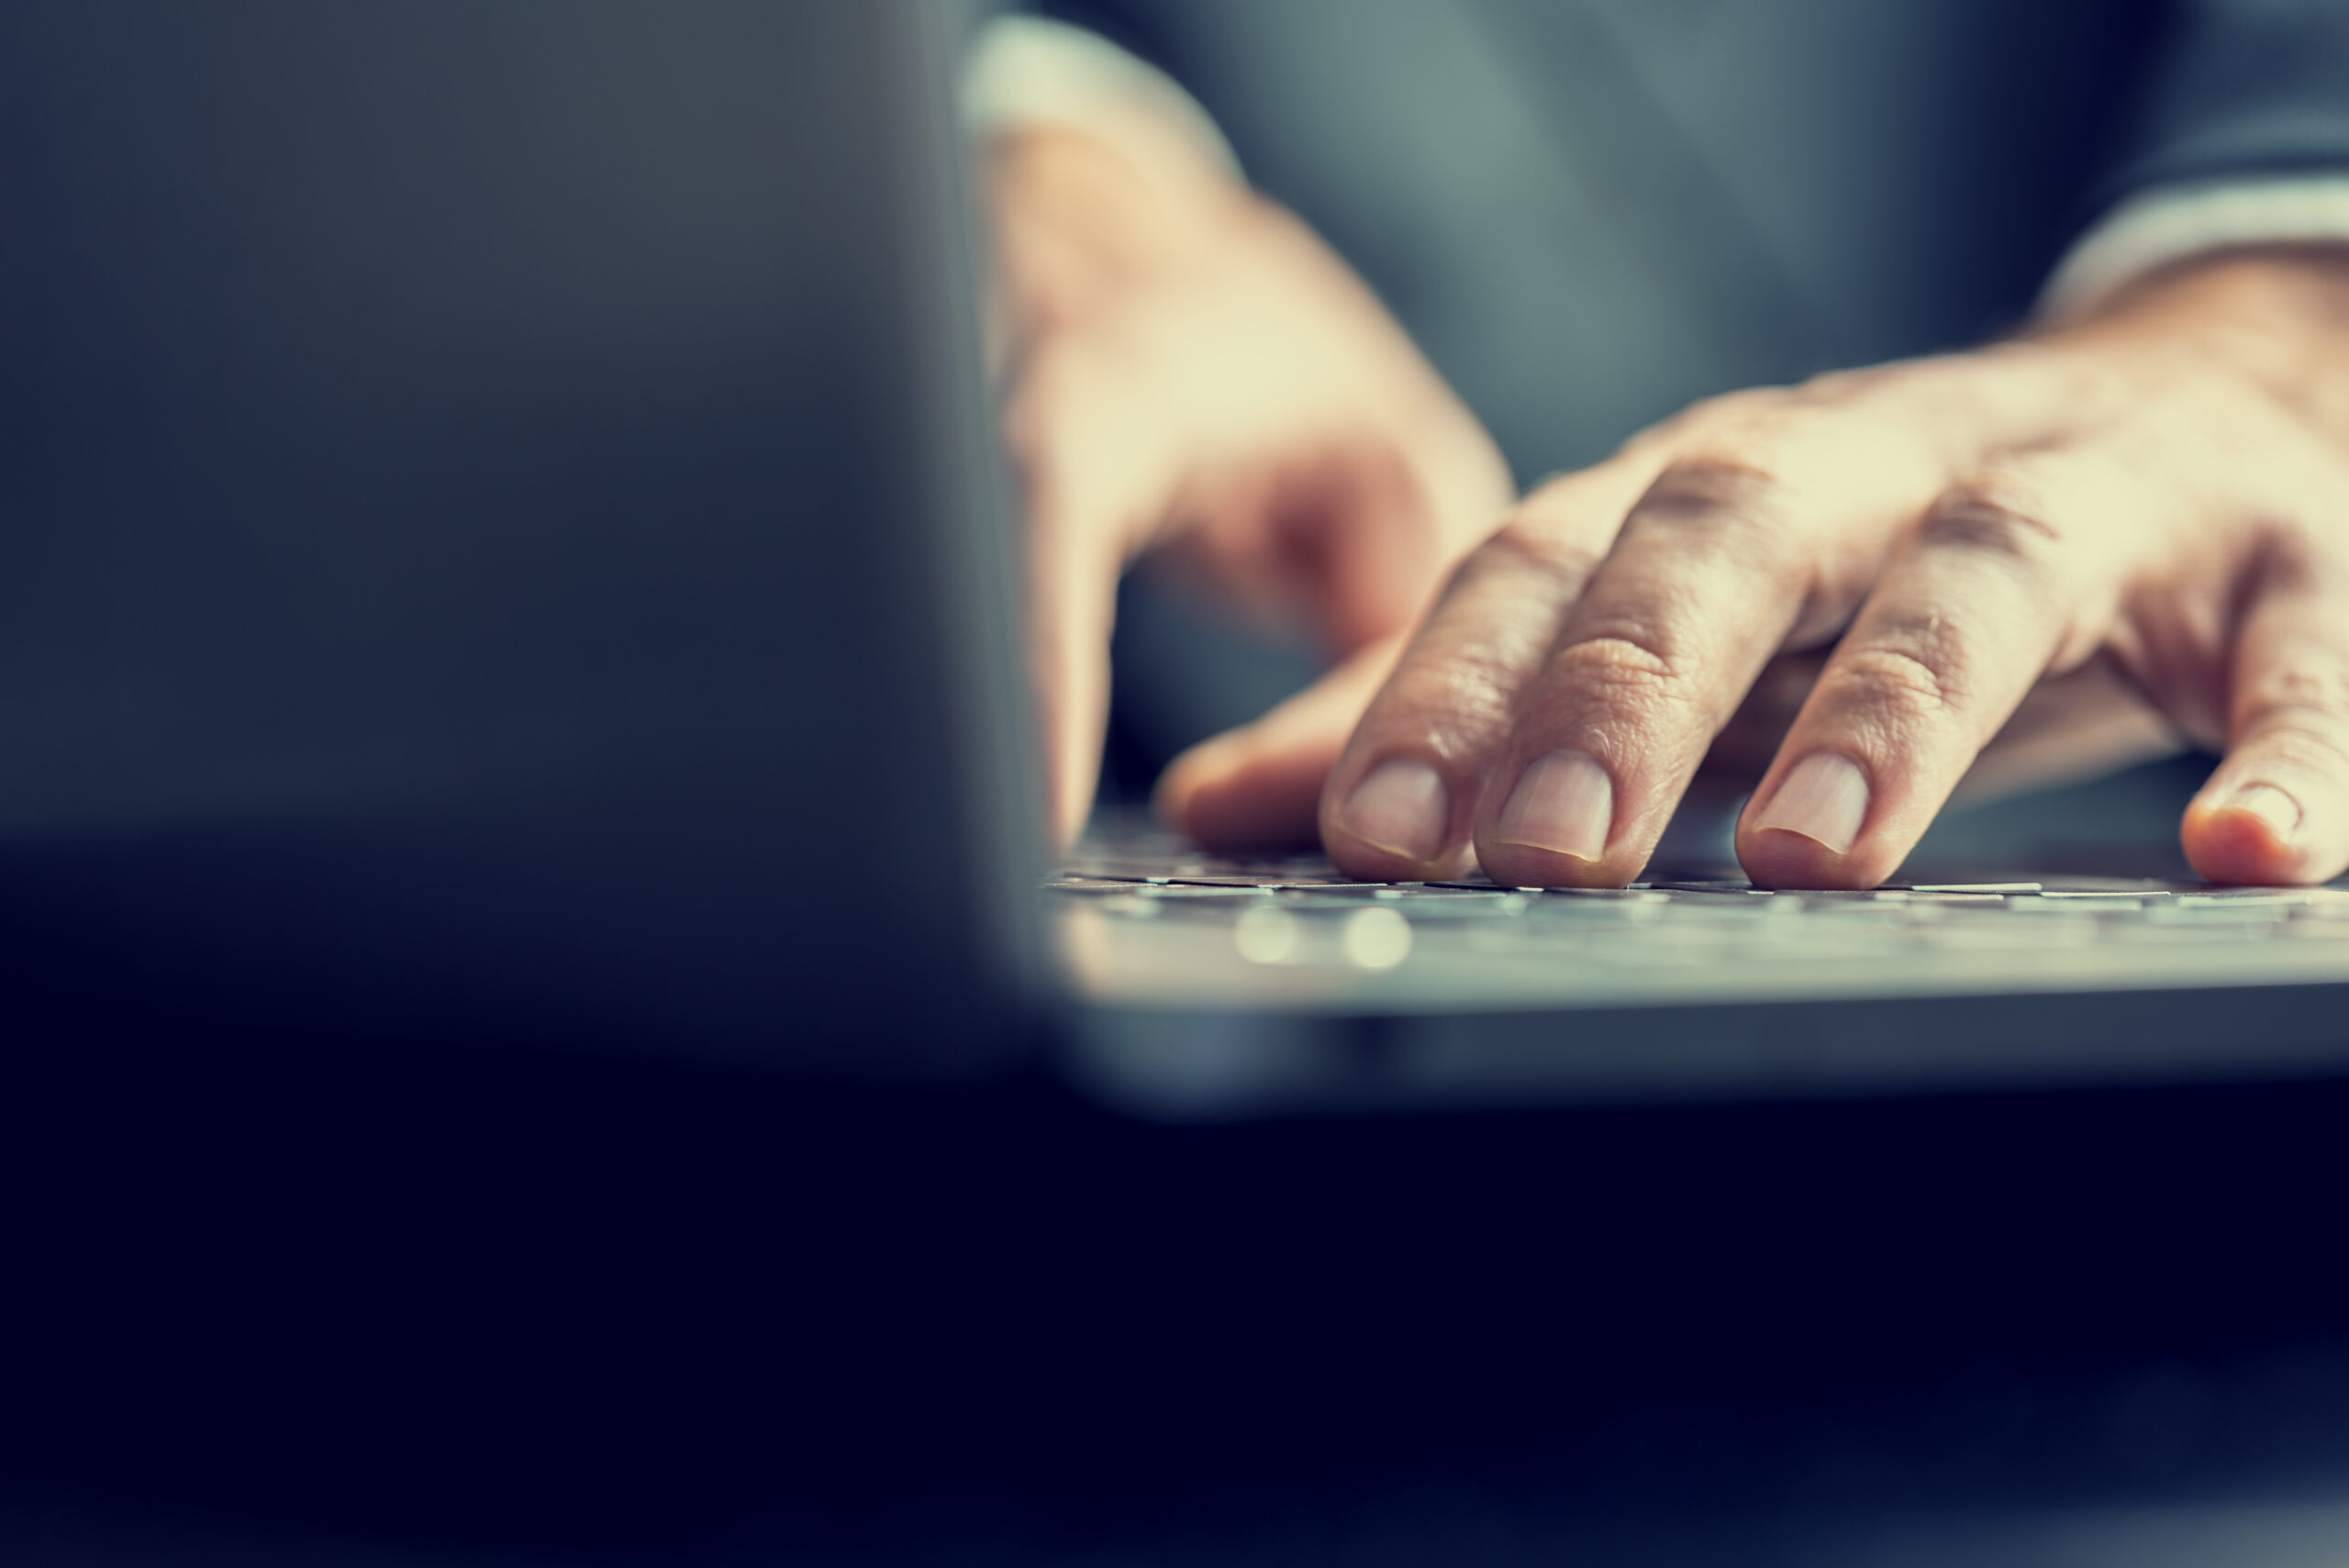 A person's hands working on a laptop